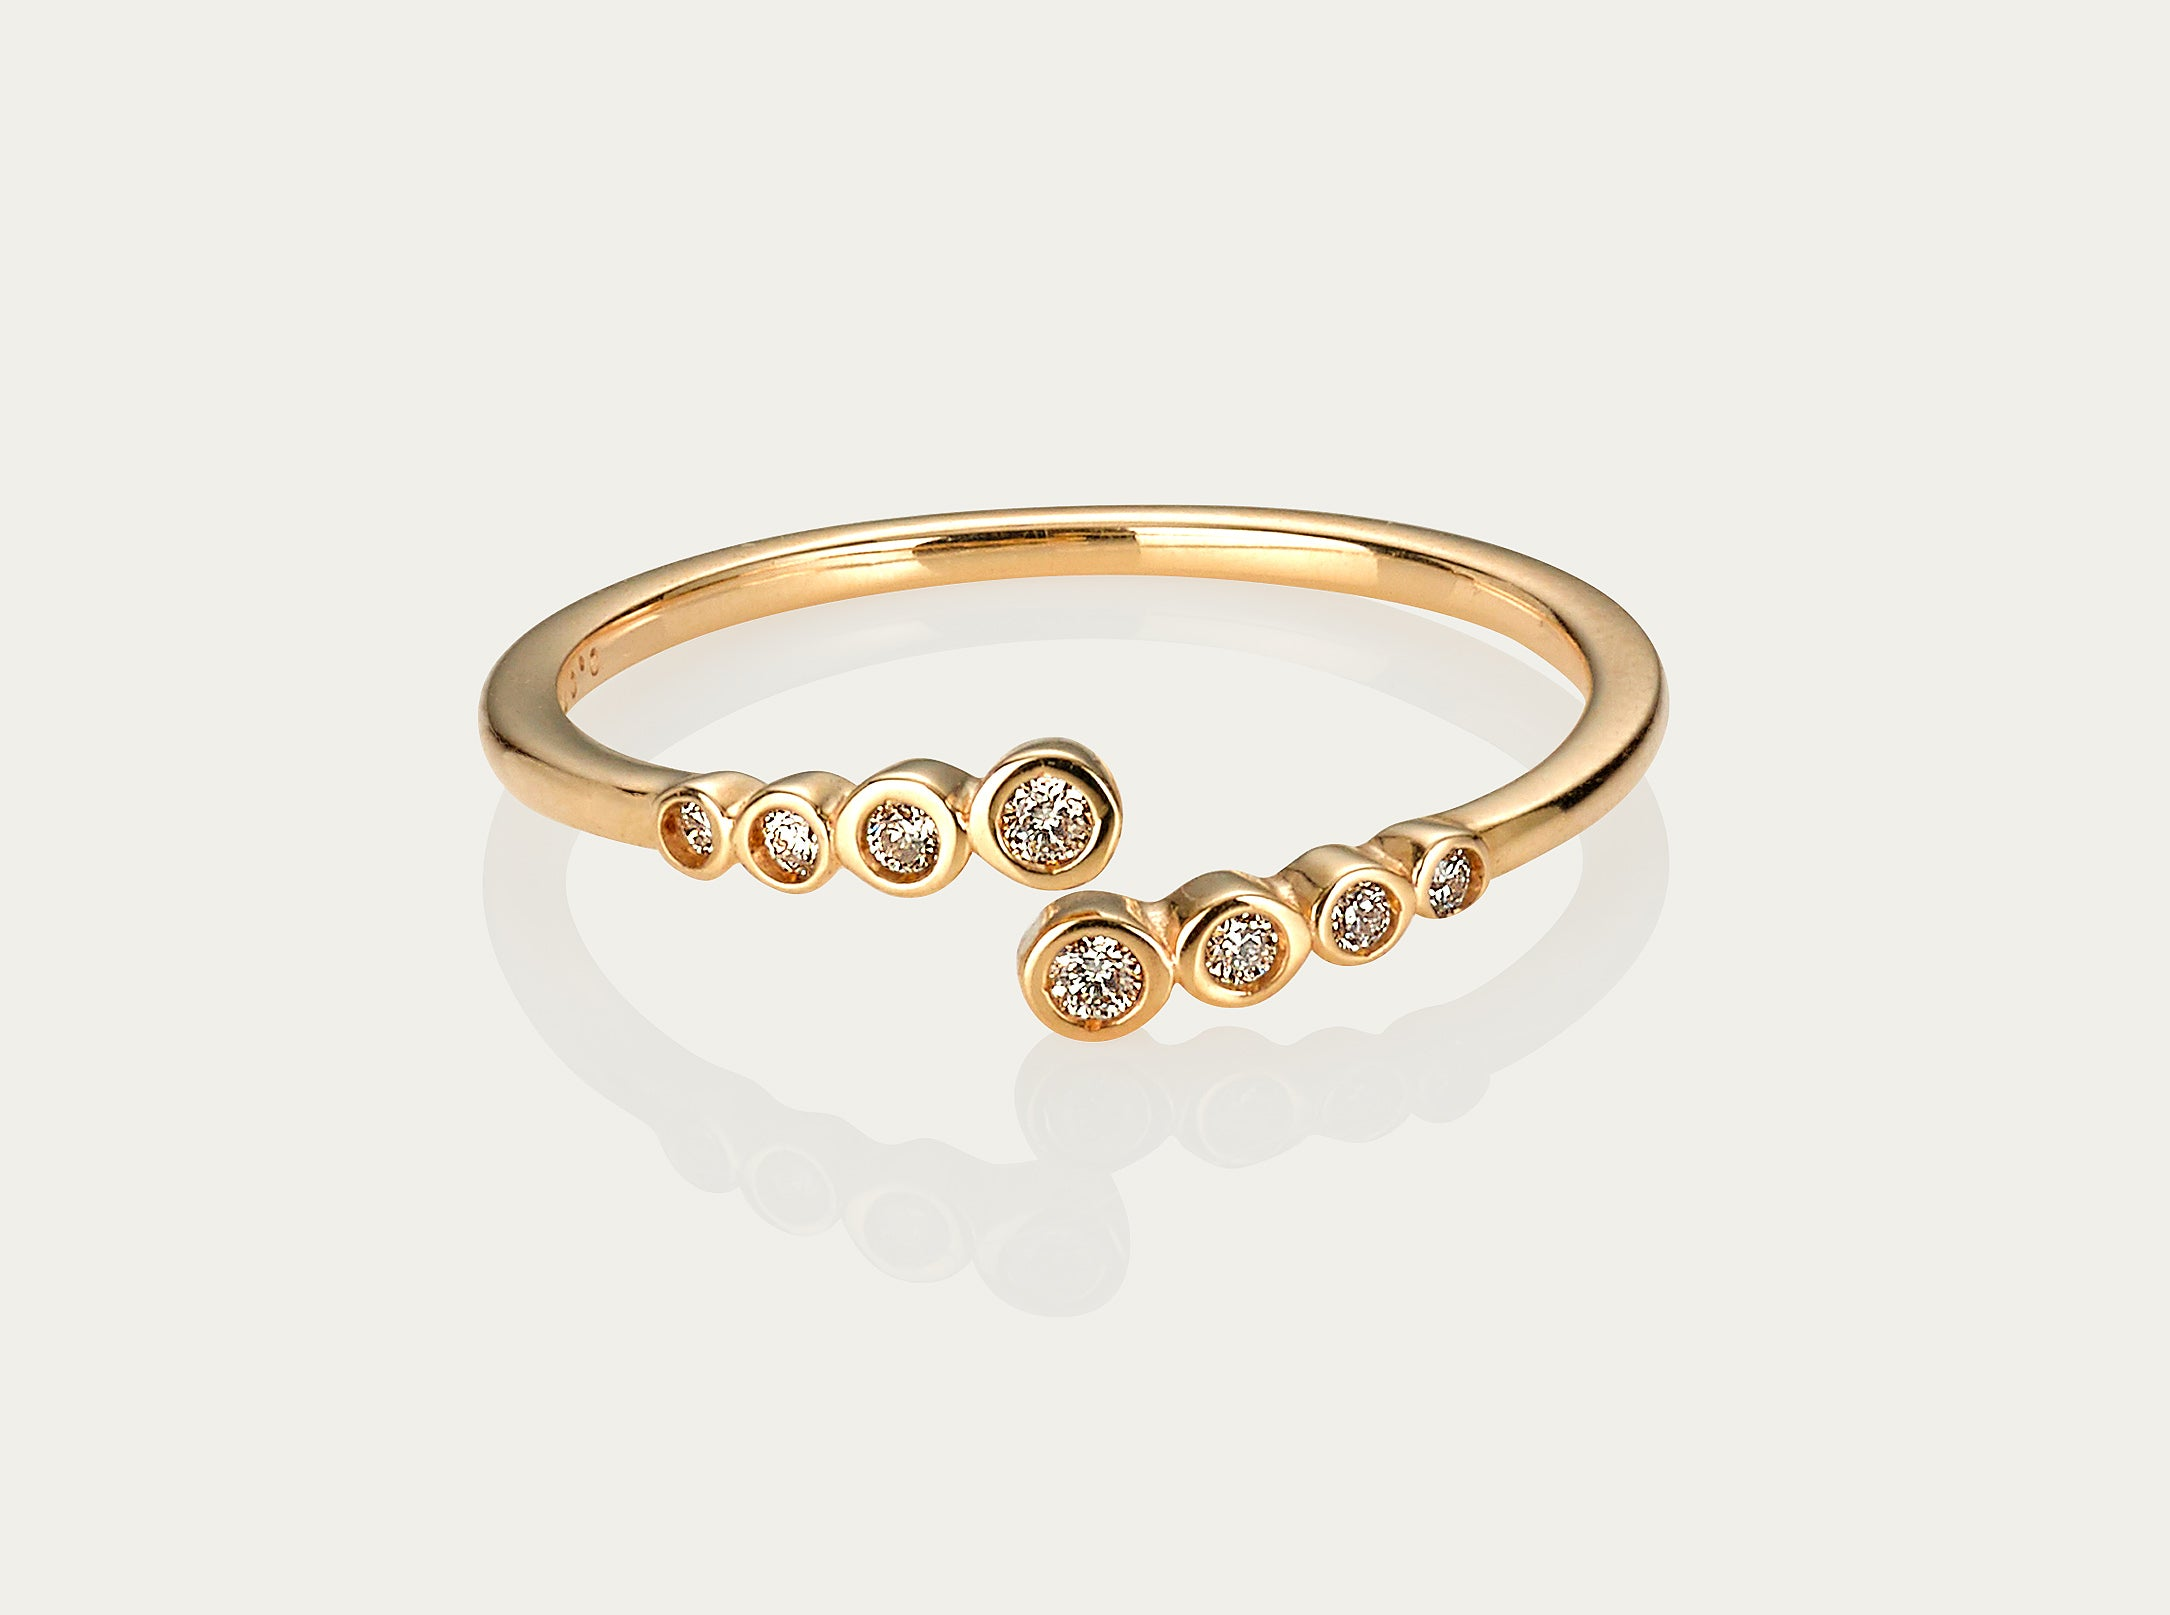 Circa Diamond ring 10K Yellow Gold